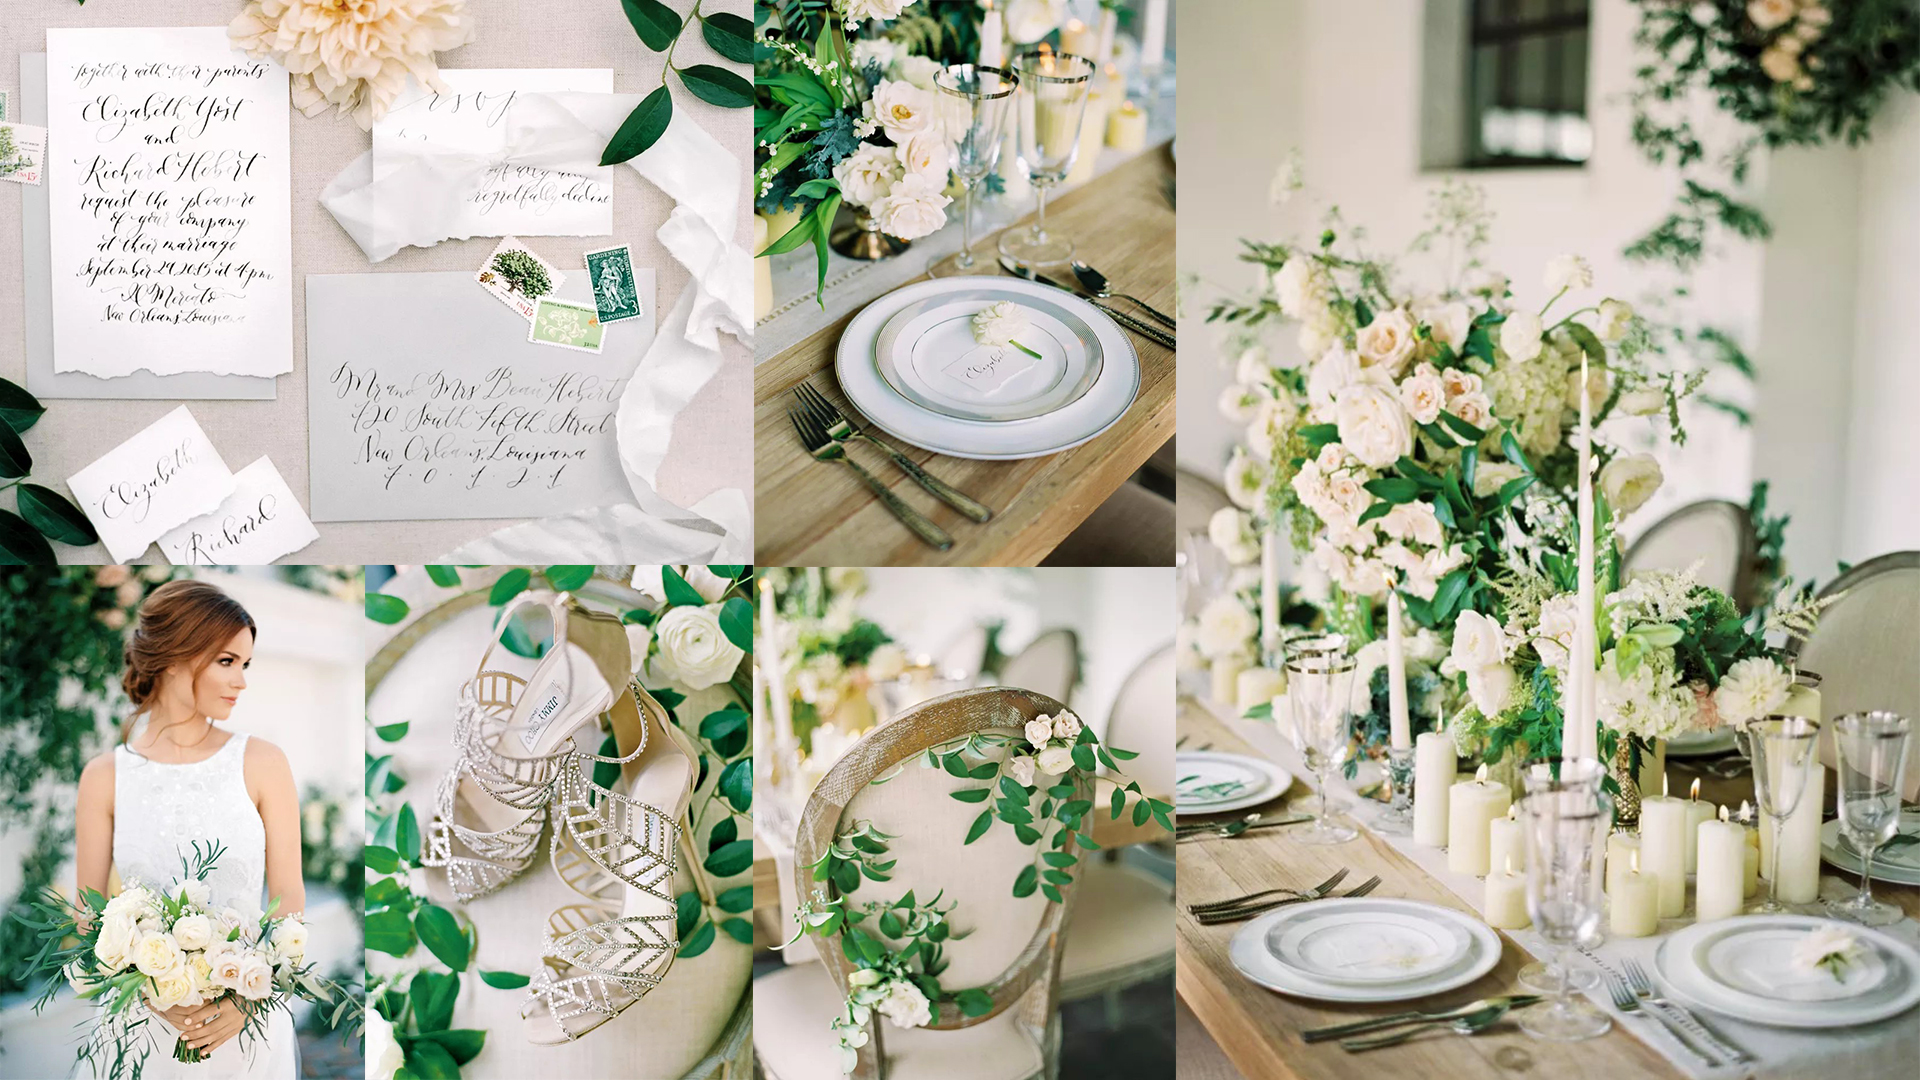 White Haute – A Modern Wedding Style With a Timeless Palette